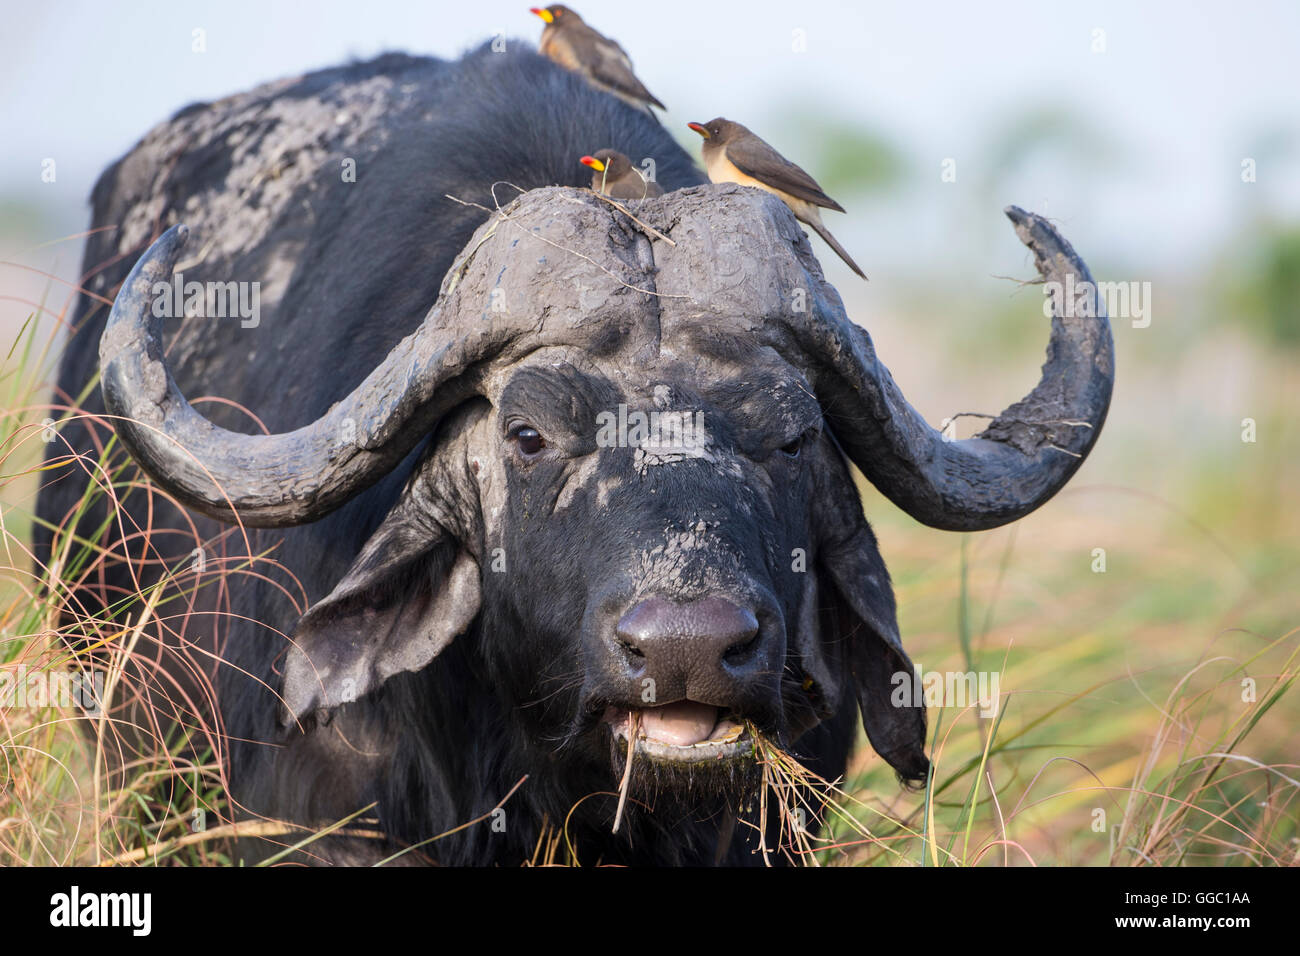 Frontal close up of a Cape Buffalo head Syncerus caffer with Oxpeckers on its head to remove ticks and mites - Stock Image